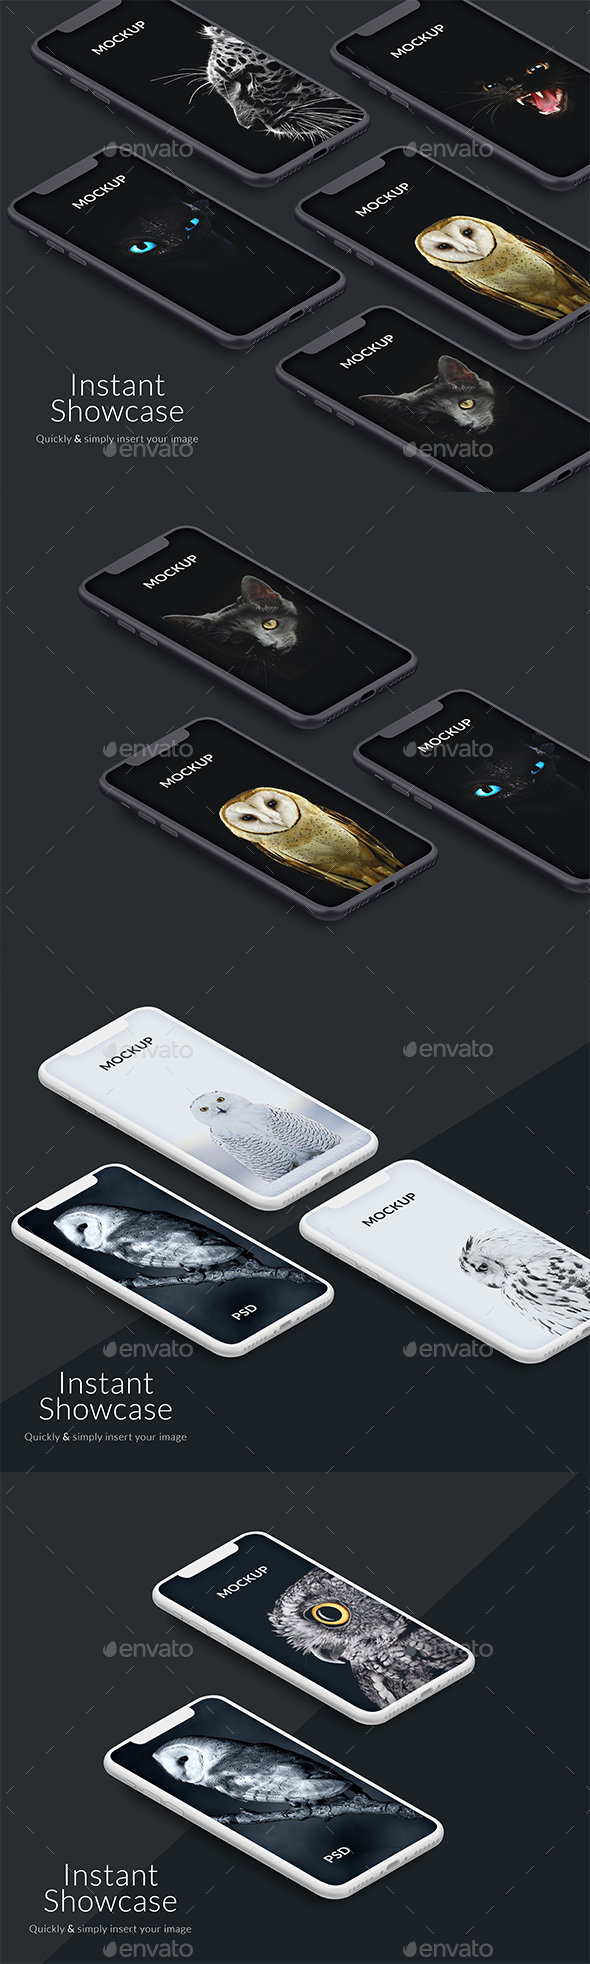 GraphicRiver Perspective Iphone X Mockup 21093292